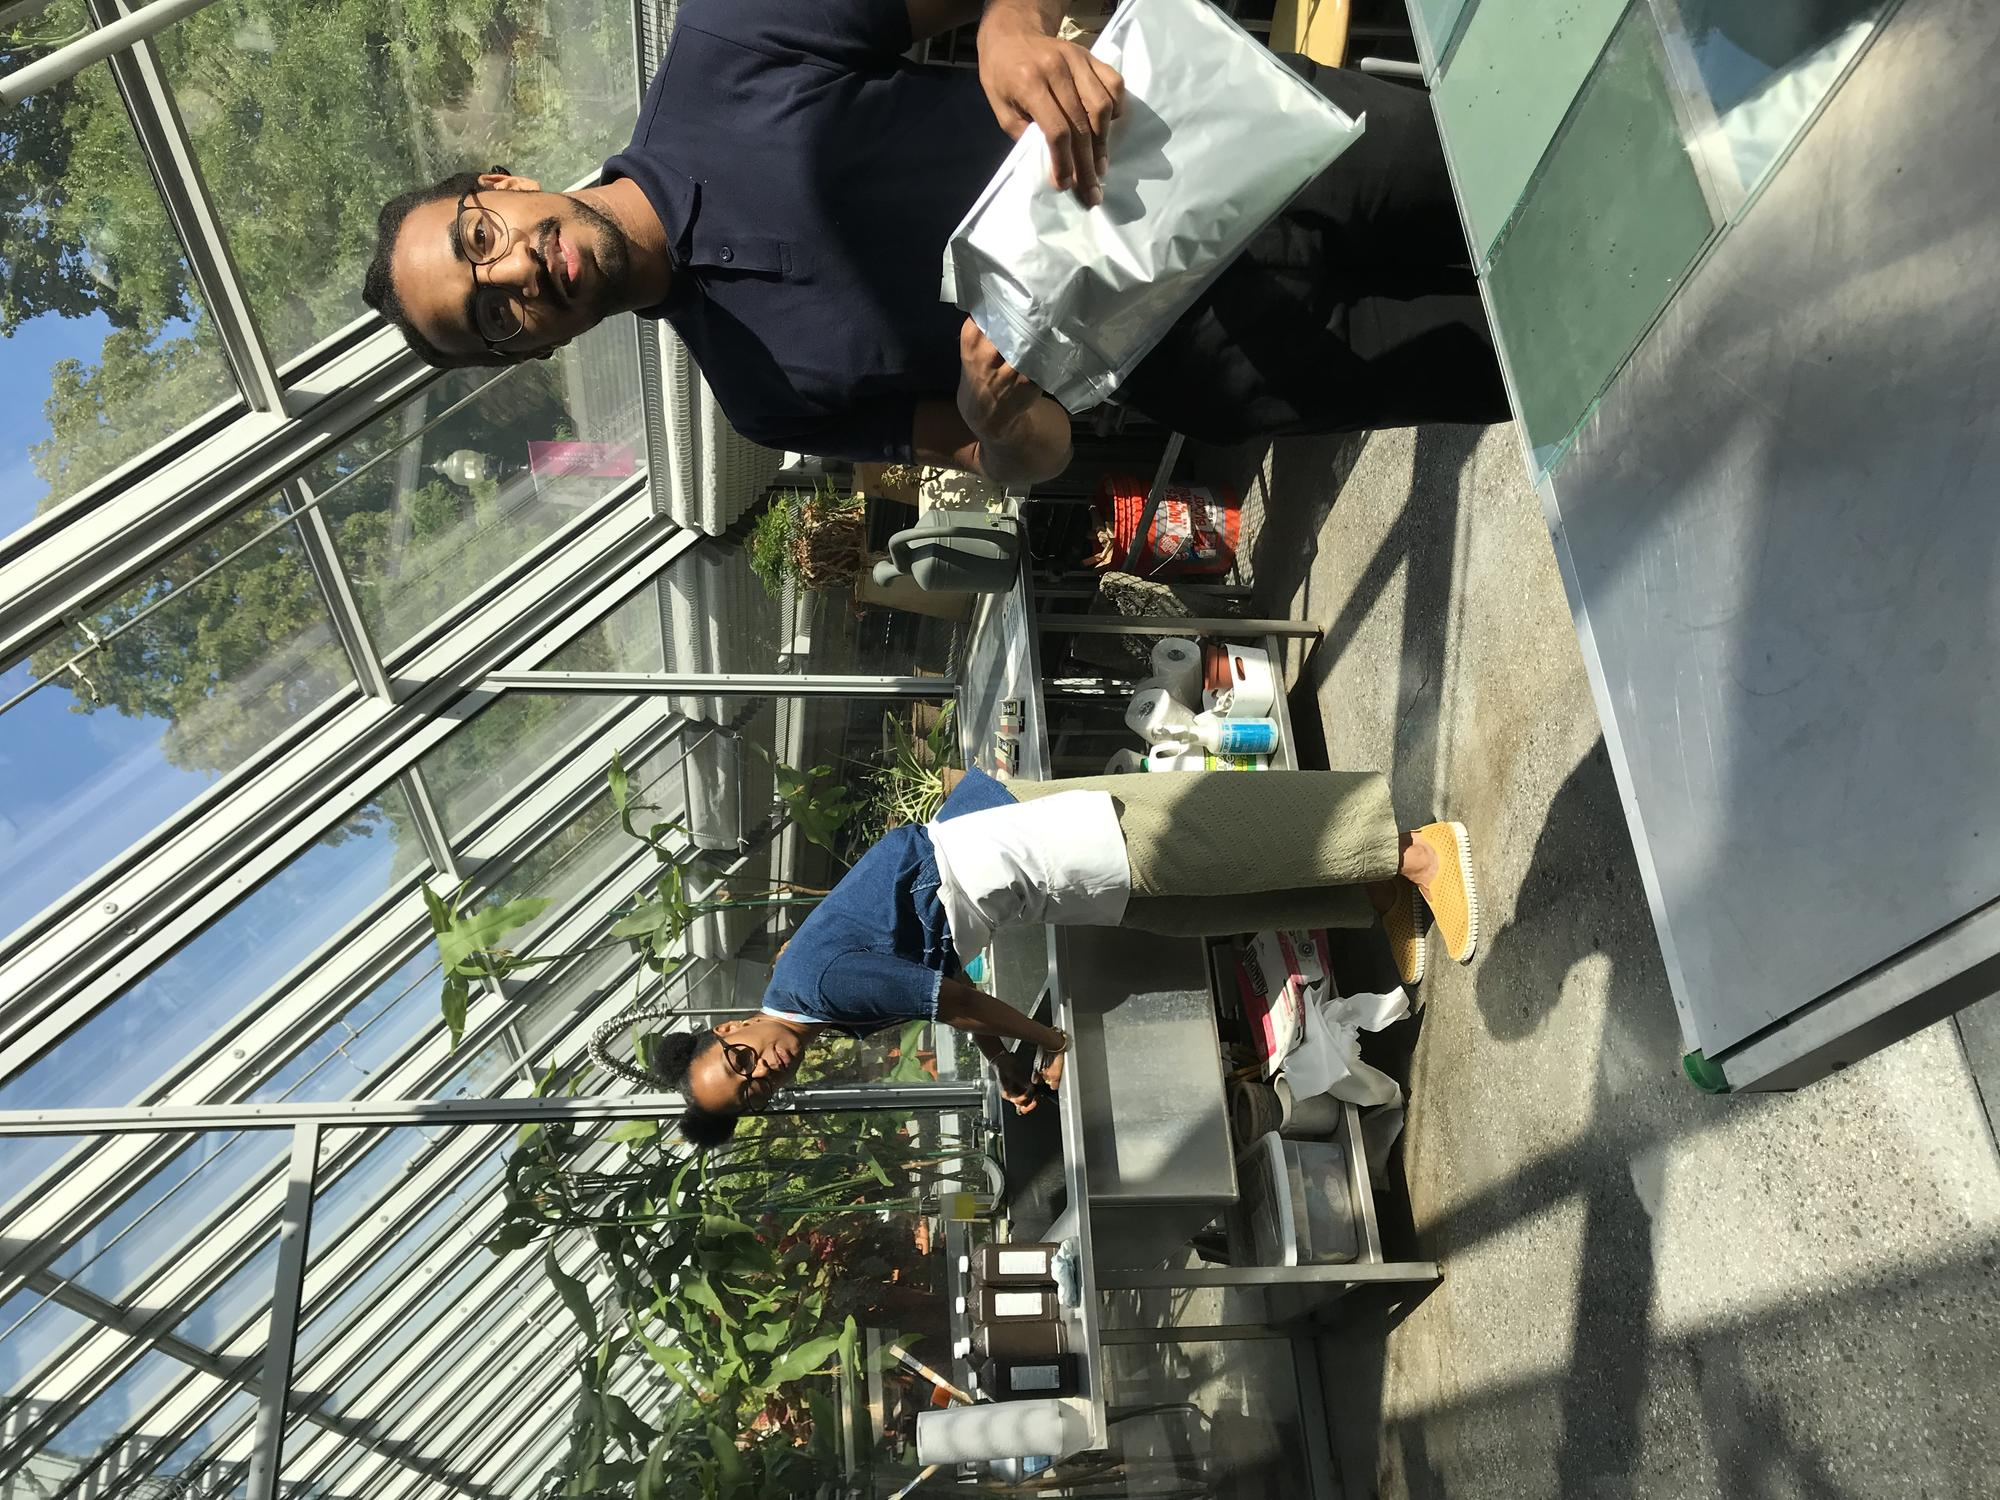 Sony Clark working on cyanotype project in the Education Greenhouse with Jonathan Jackson, 2019